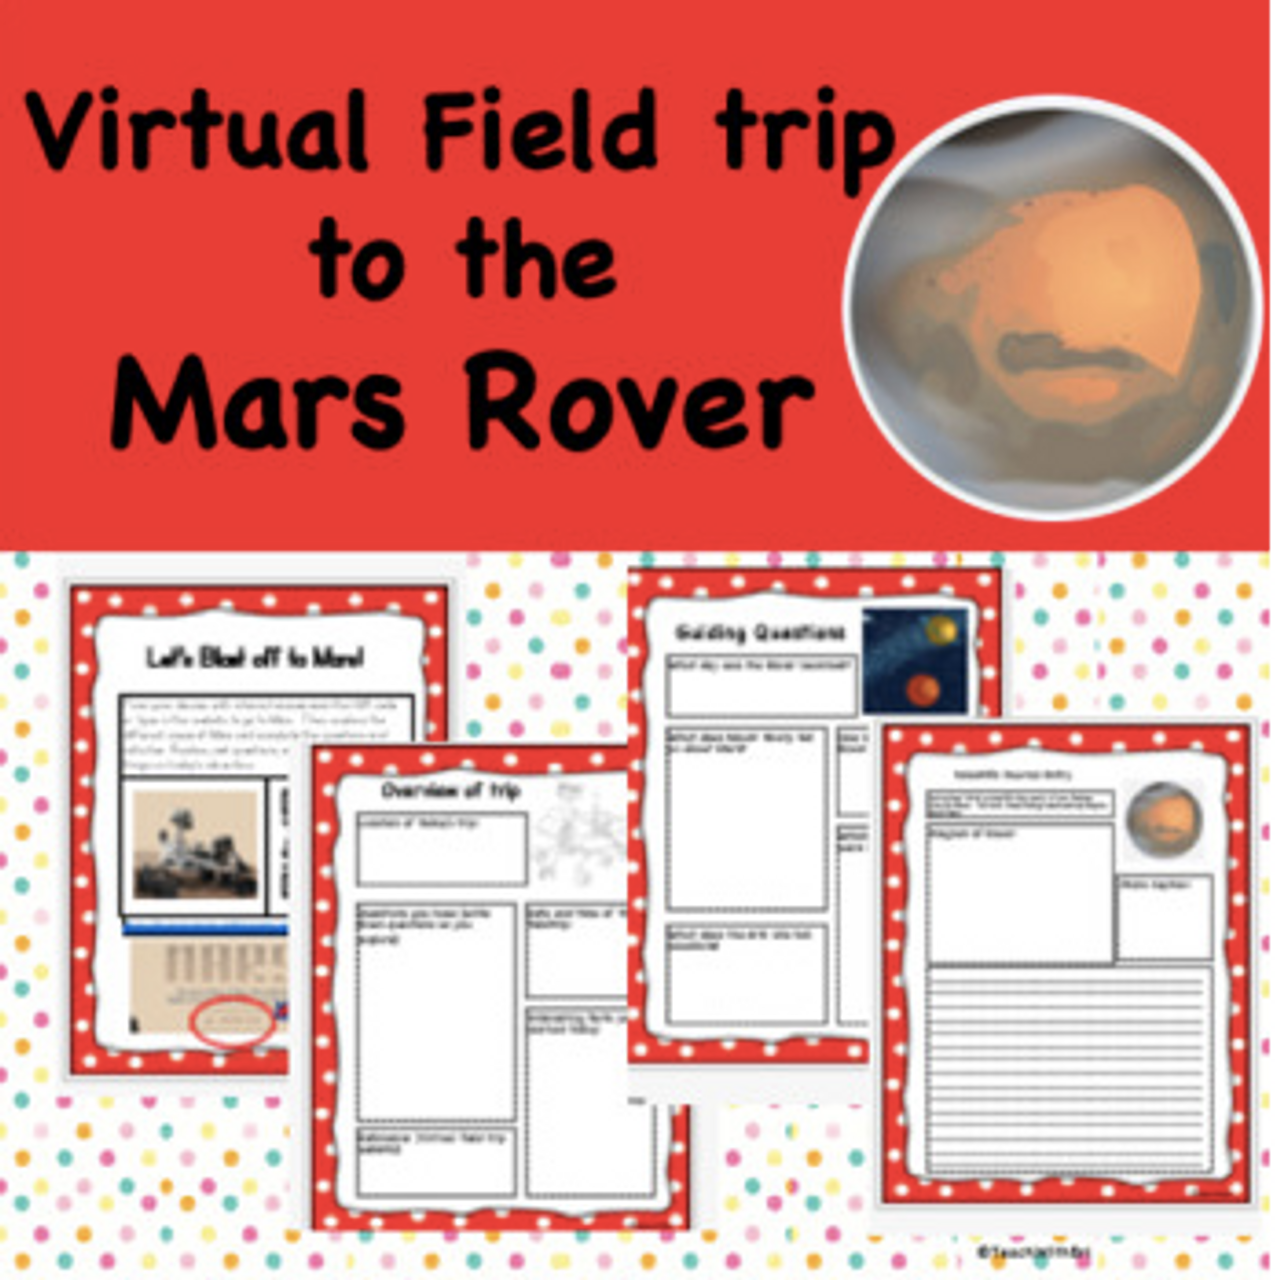 Virtual Field Trip to the Mars Rover